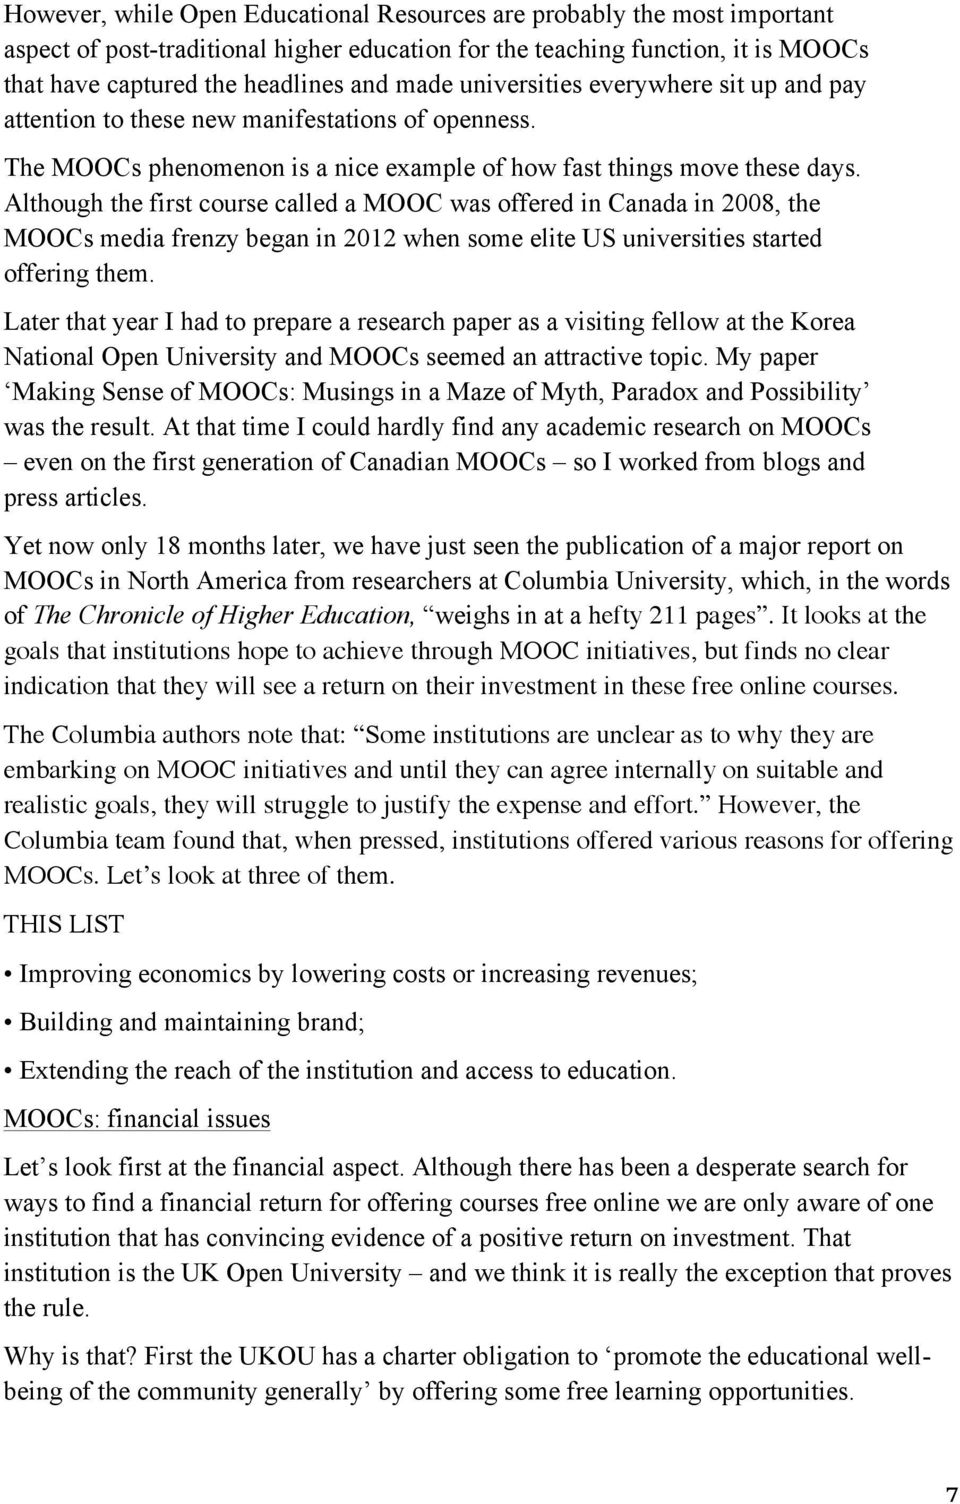 Although the first course called a MOOC was offered in Canada in 2008, the MOOCs media frenzy began in 2012 when some elite US universities started offering them.